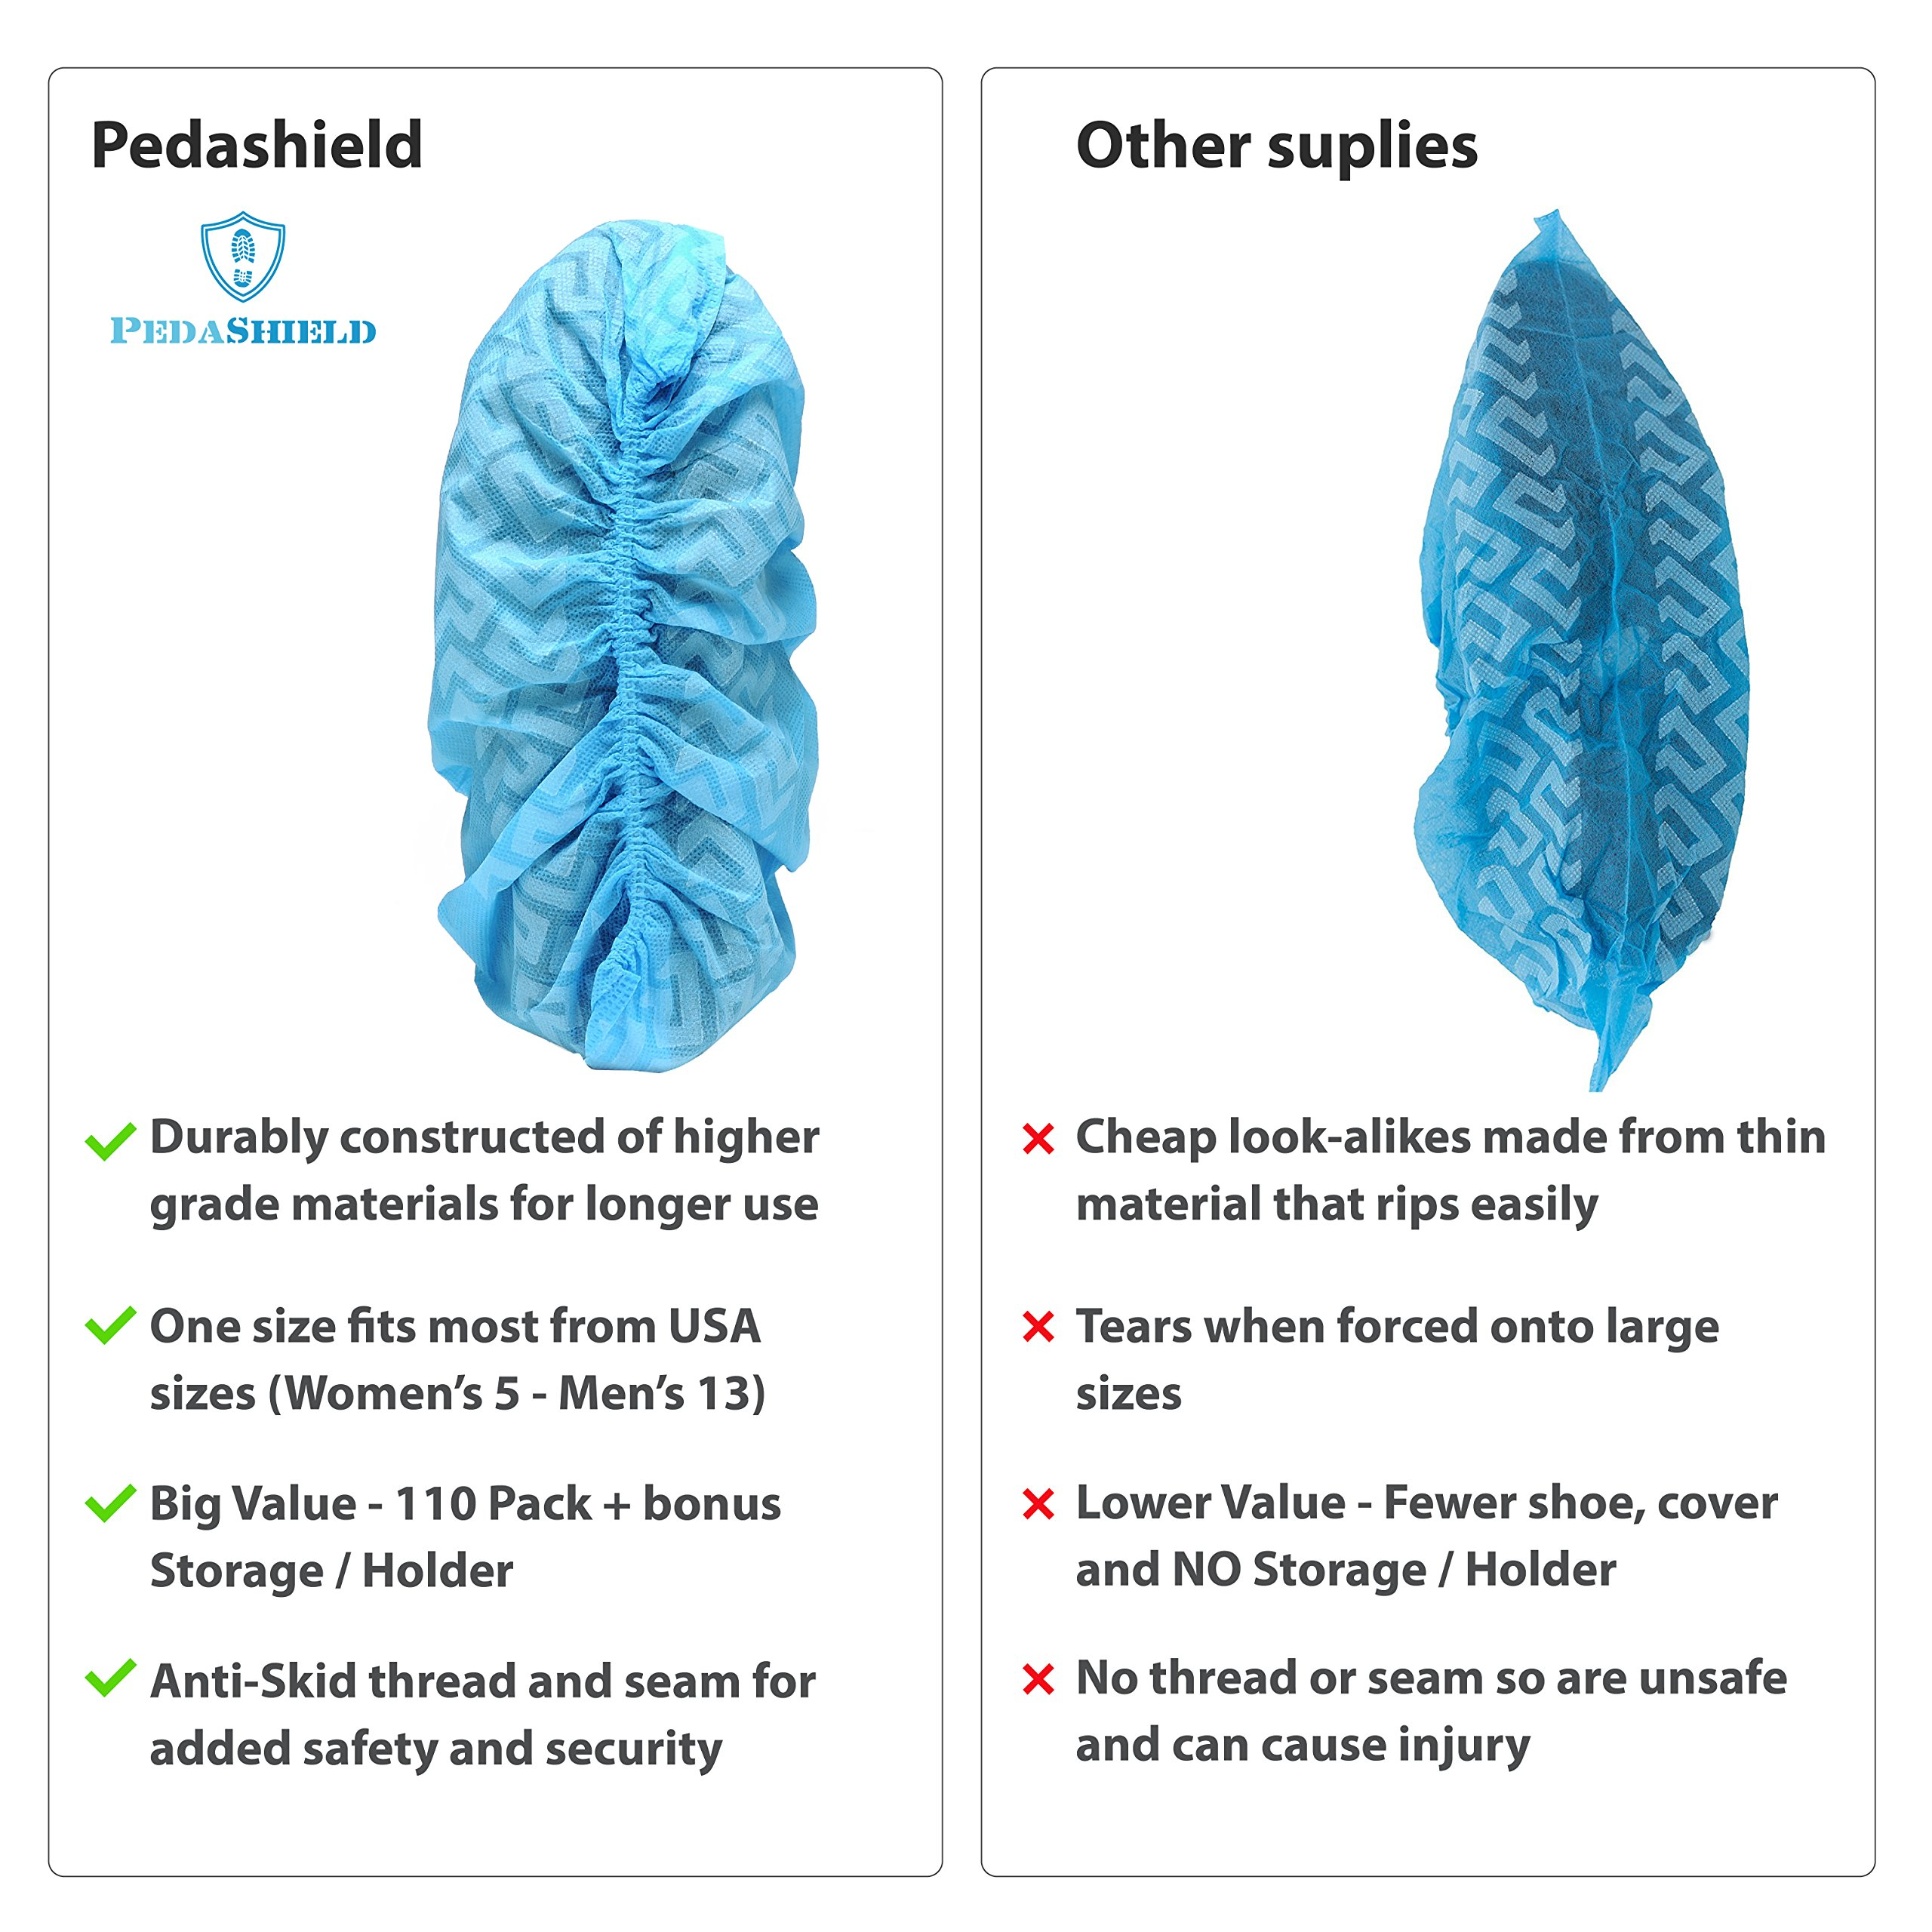 330 Pack Premium Disposable Boot & Shoe Covers by PedaShield | Booties are Large, Durable, Water Resistant, Blue, Recyclable | One Size Fits Up to XL Men's 13 | Built for 25 percent MORE USE (330)